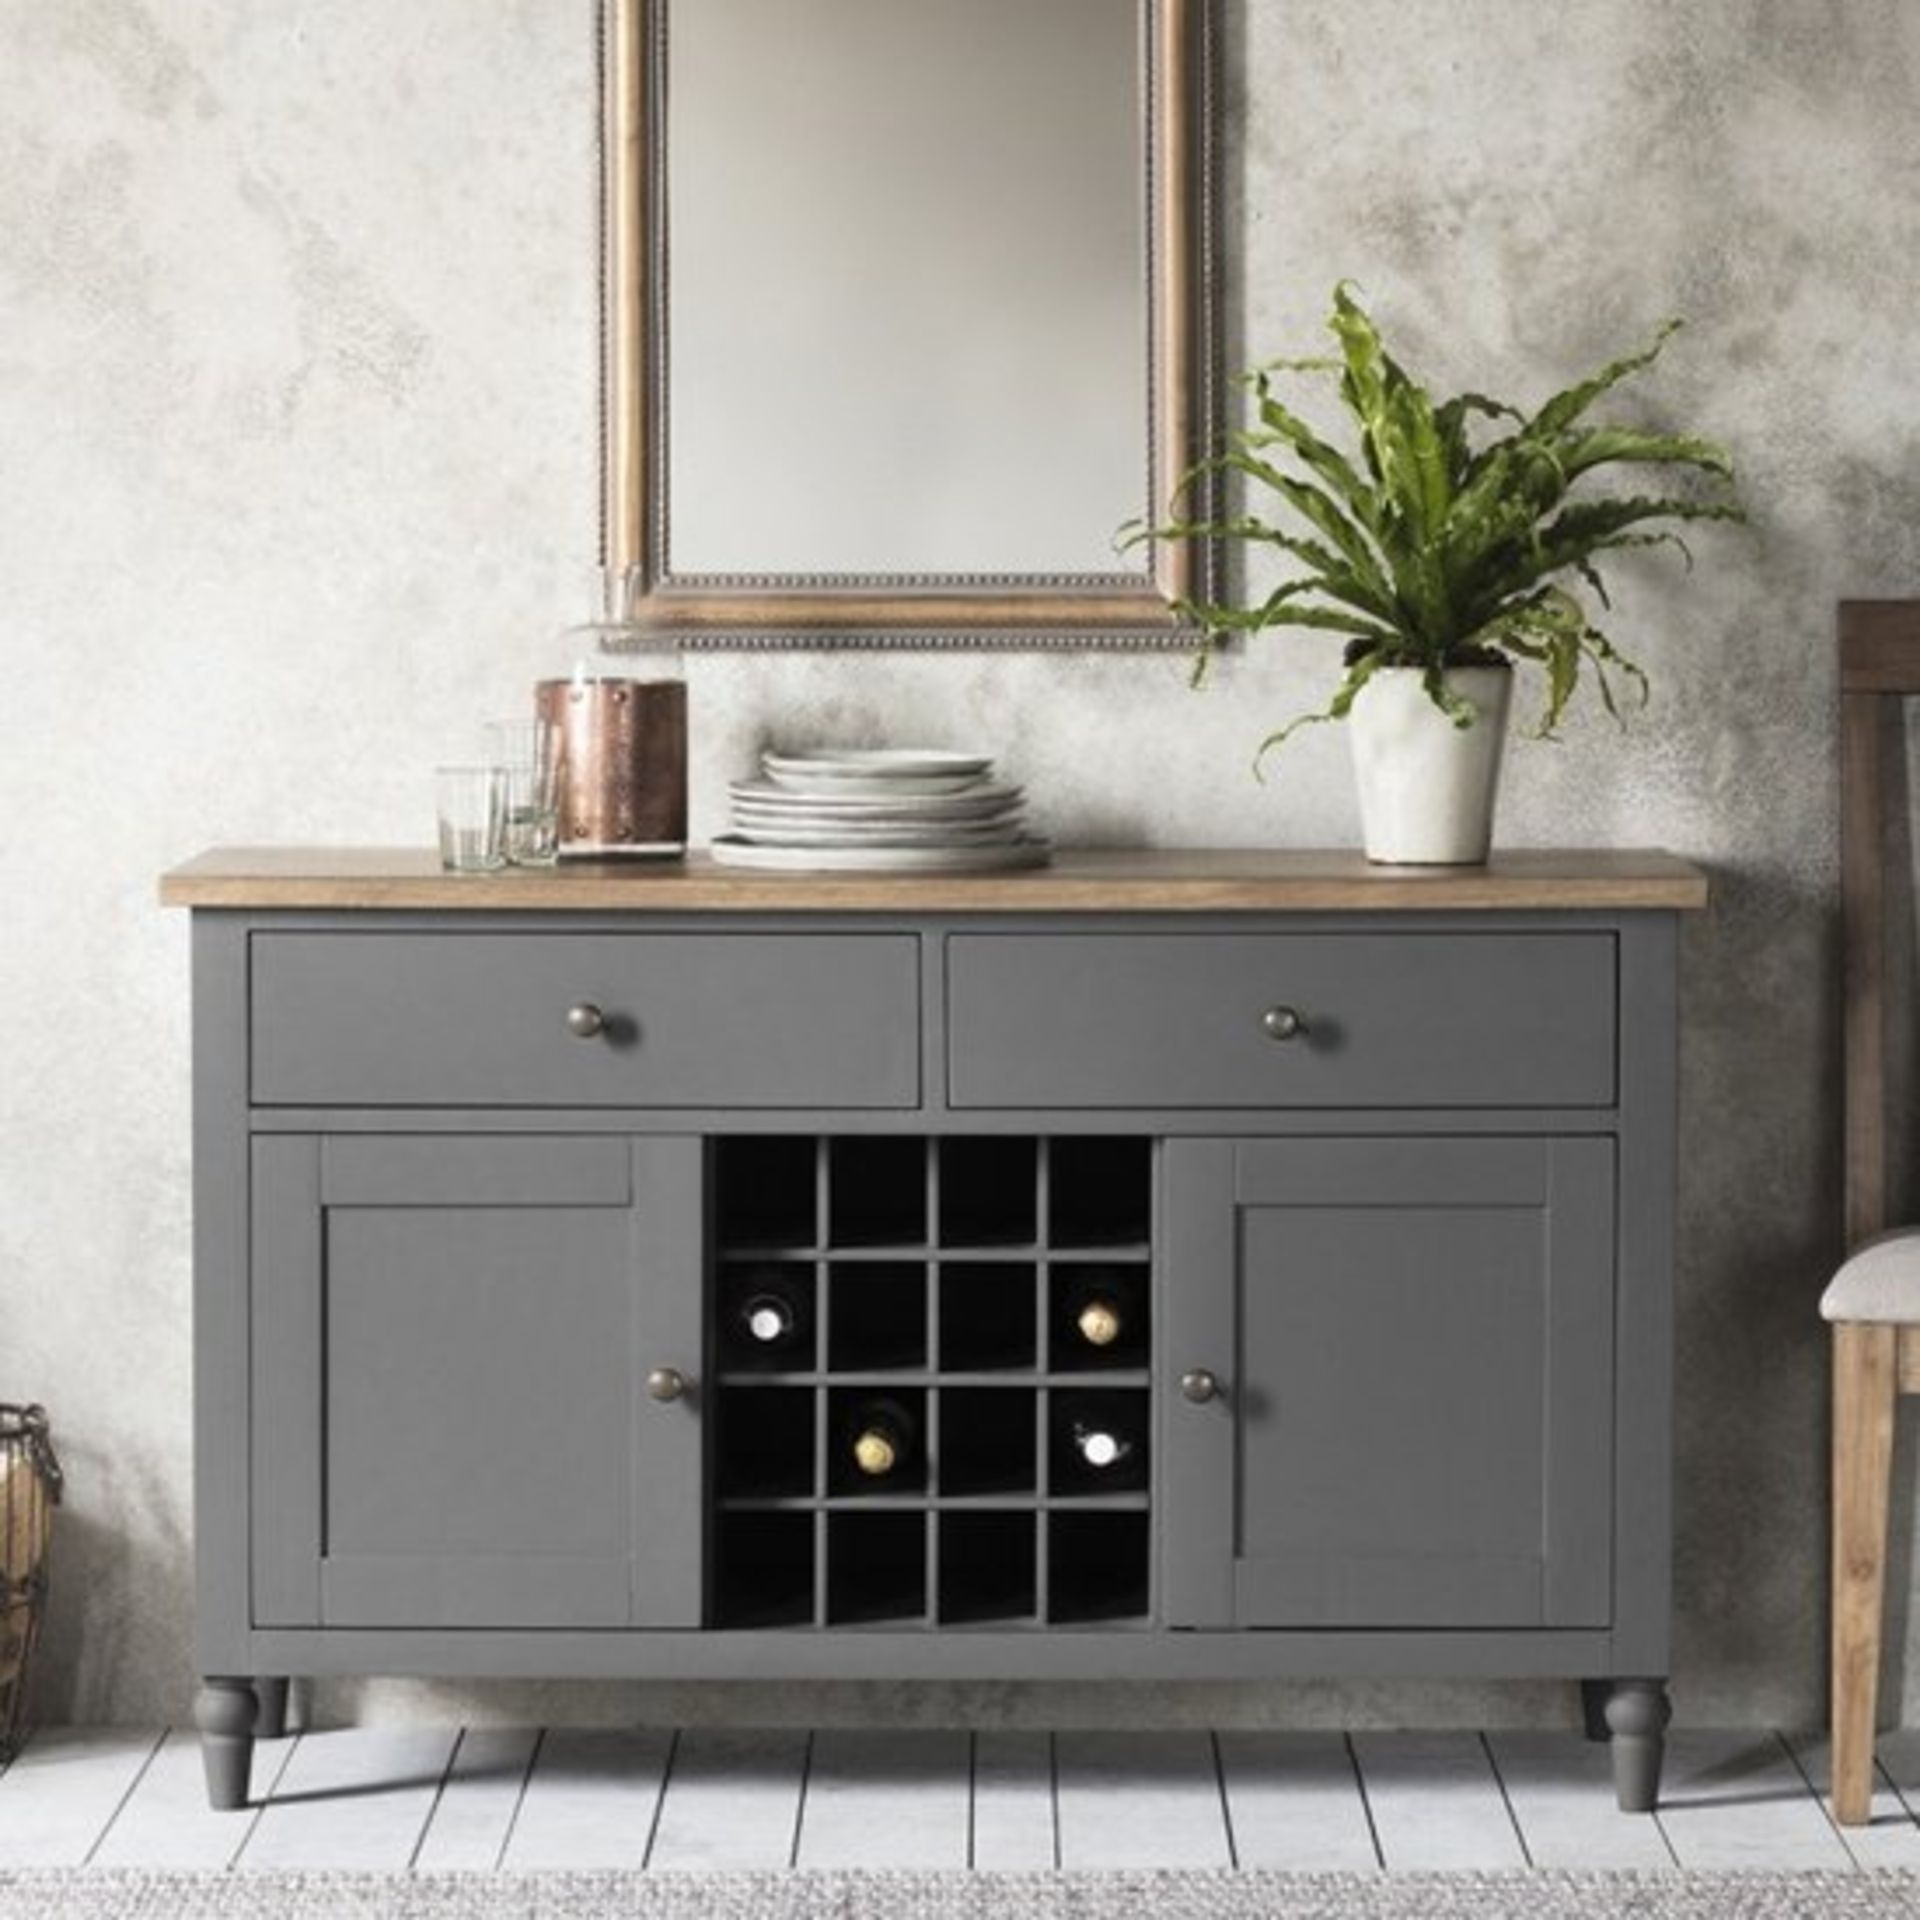 Cookham Large Sideboard in Grey features a built-in wine rack, 2 cupboards, each with a shelf, and 2